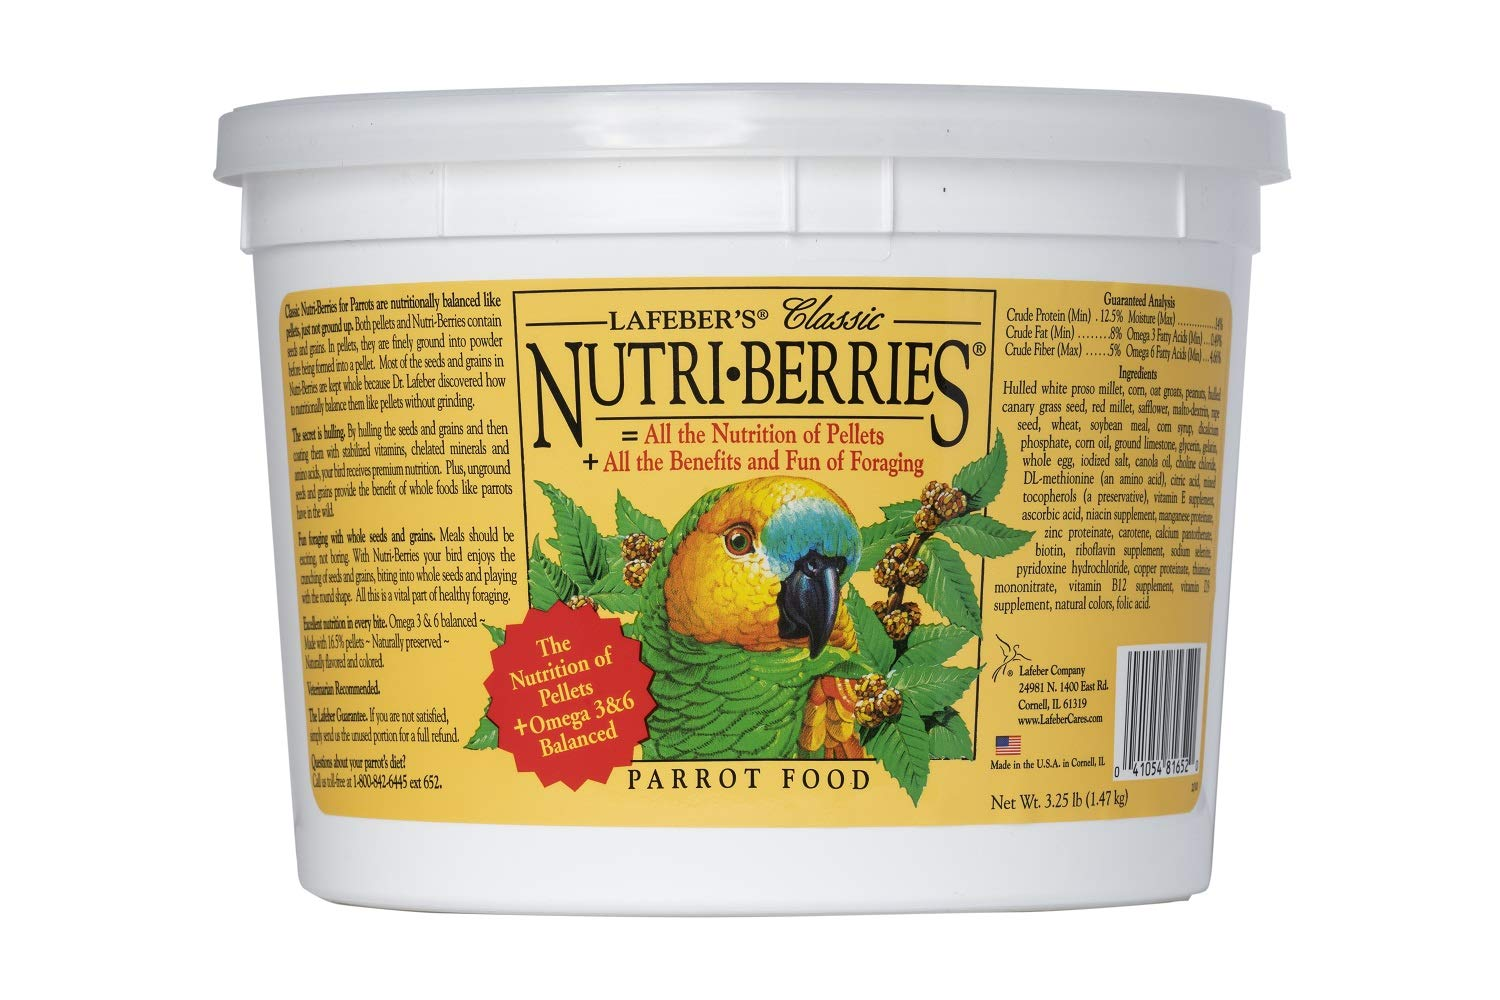 LAFEBER'S Classic Nutri-Berries Pet Bird Food, Made with Non-GMO and Human-Grade Ingredients, for Parrots, 3.25 lbs by LAFEBER'S